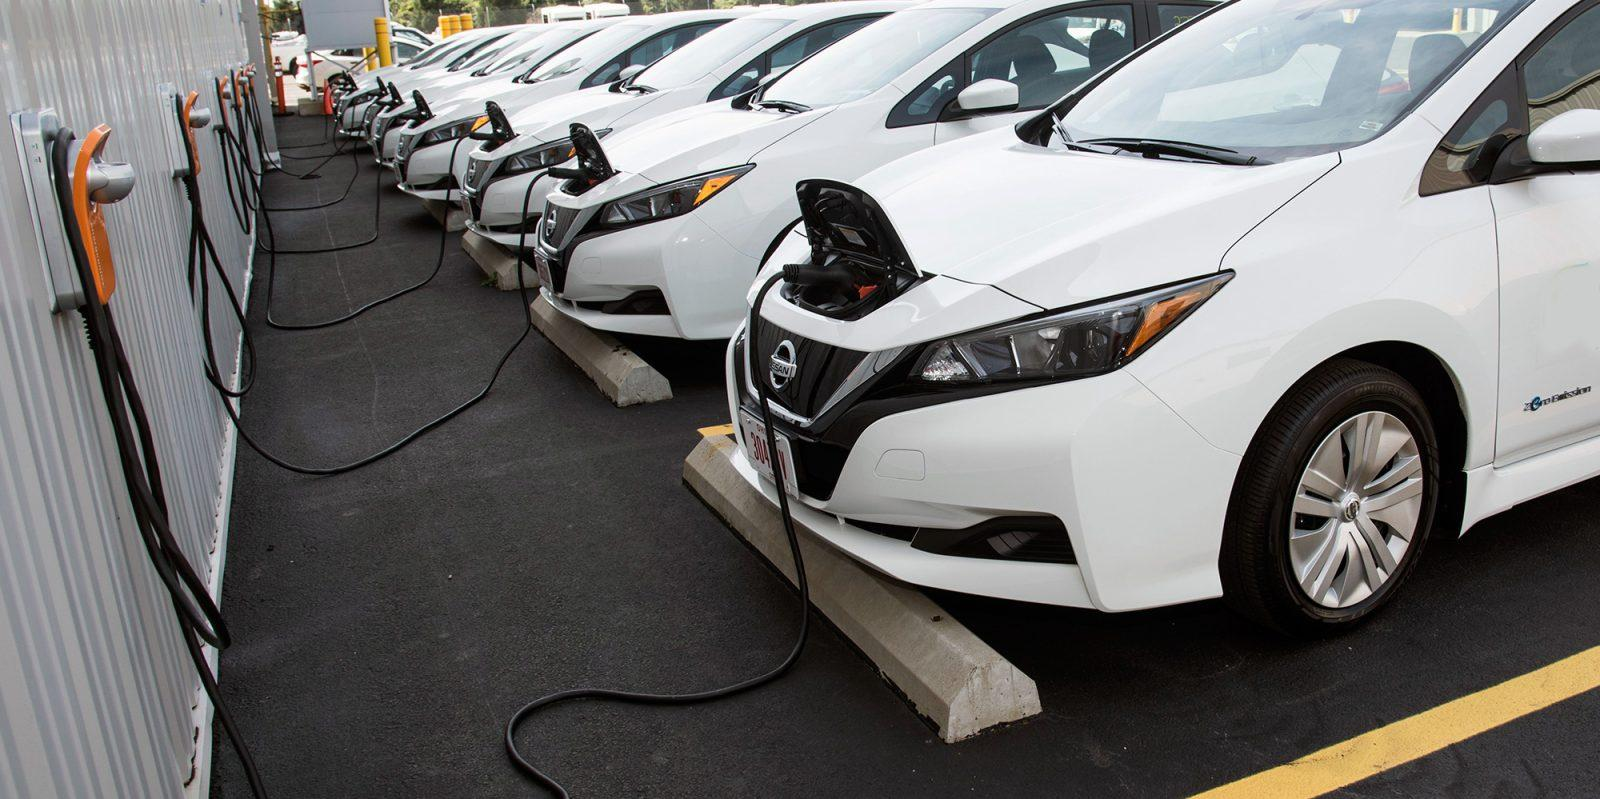 8 lessons about EV battery health from 6,300 electric cars - Electrek